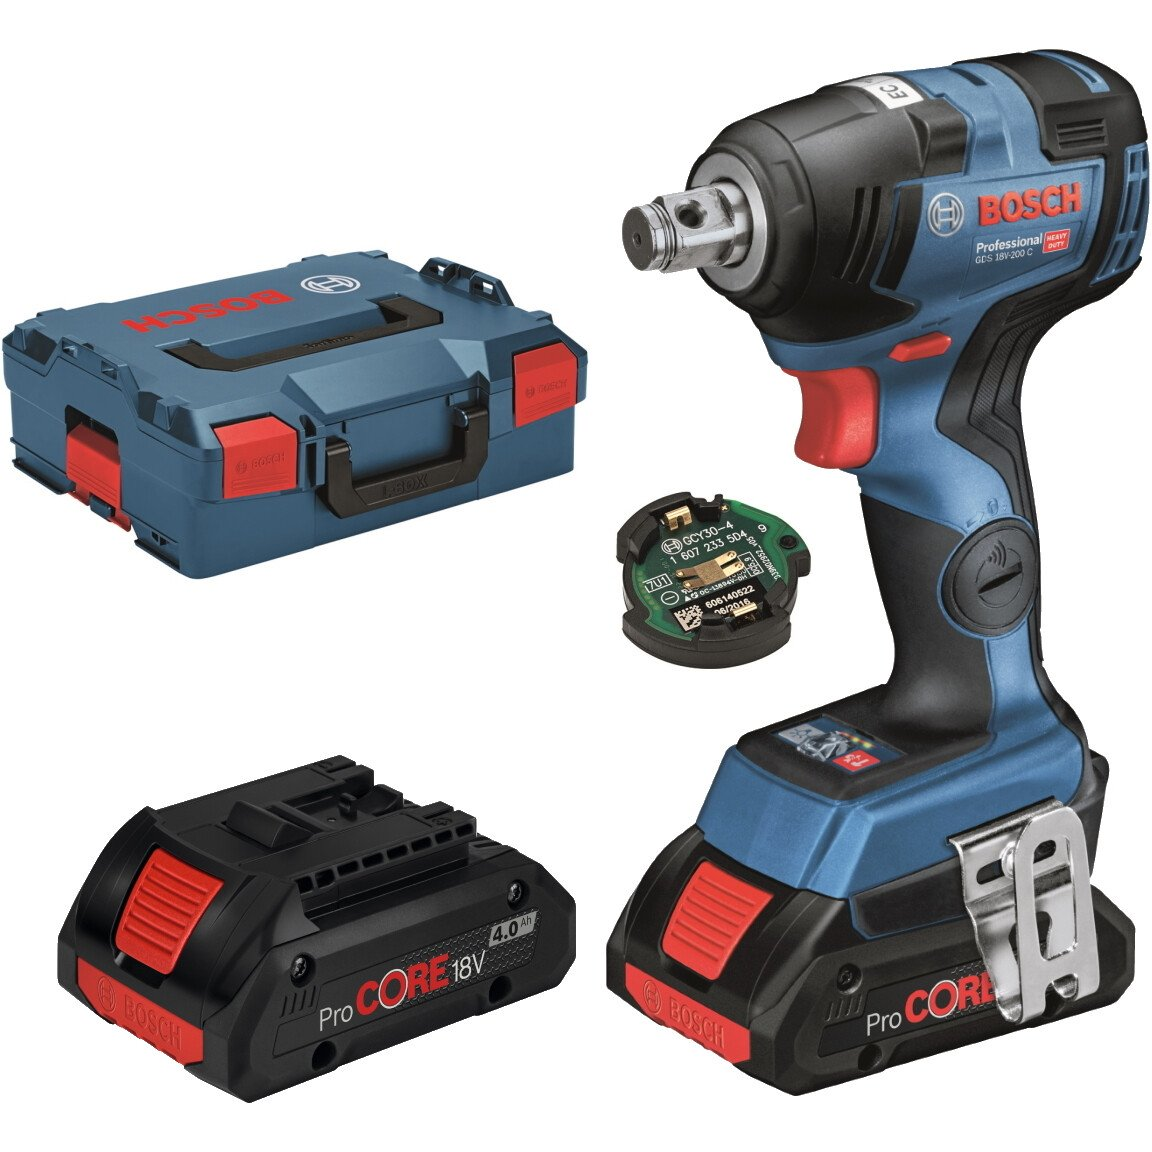 Bosch GDS 18 V-200 C 18V Brushless Impact Wrench 2x4.0Ah Procore with Bluetooth Module  in L-Boxx